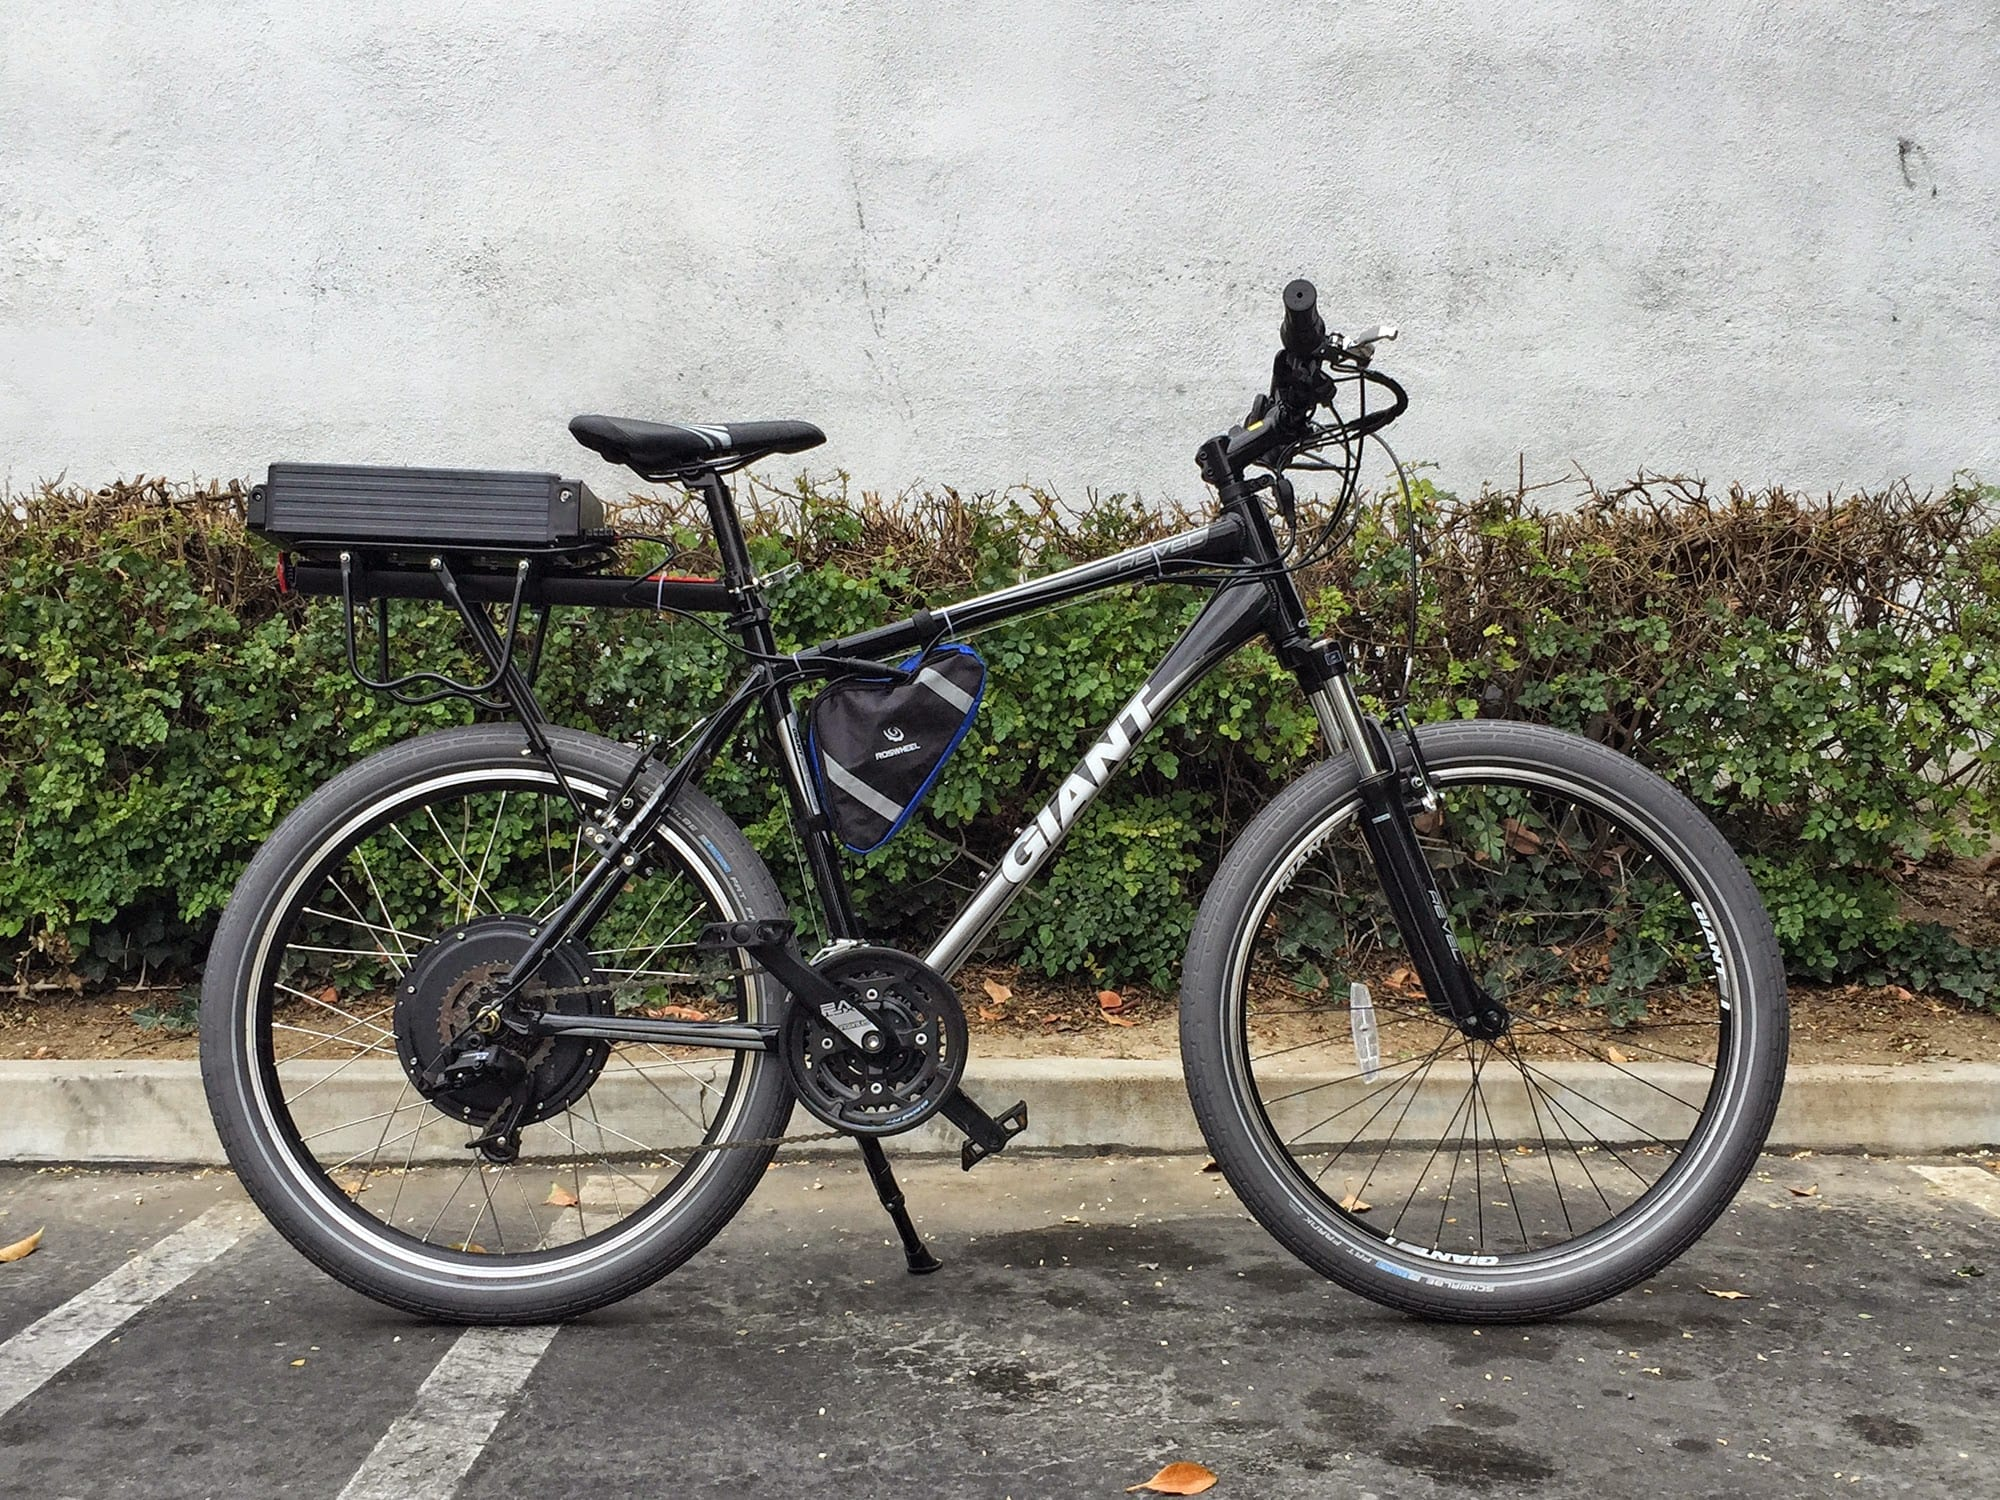 Dillenger 750w Gearless Electric Bike Kit Review Prices